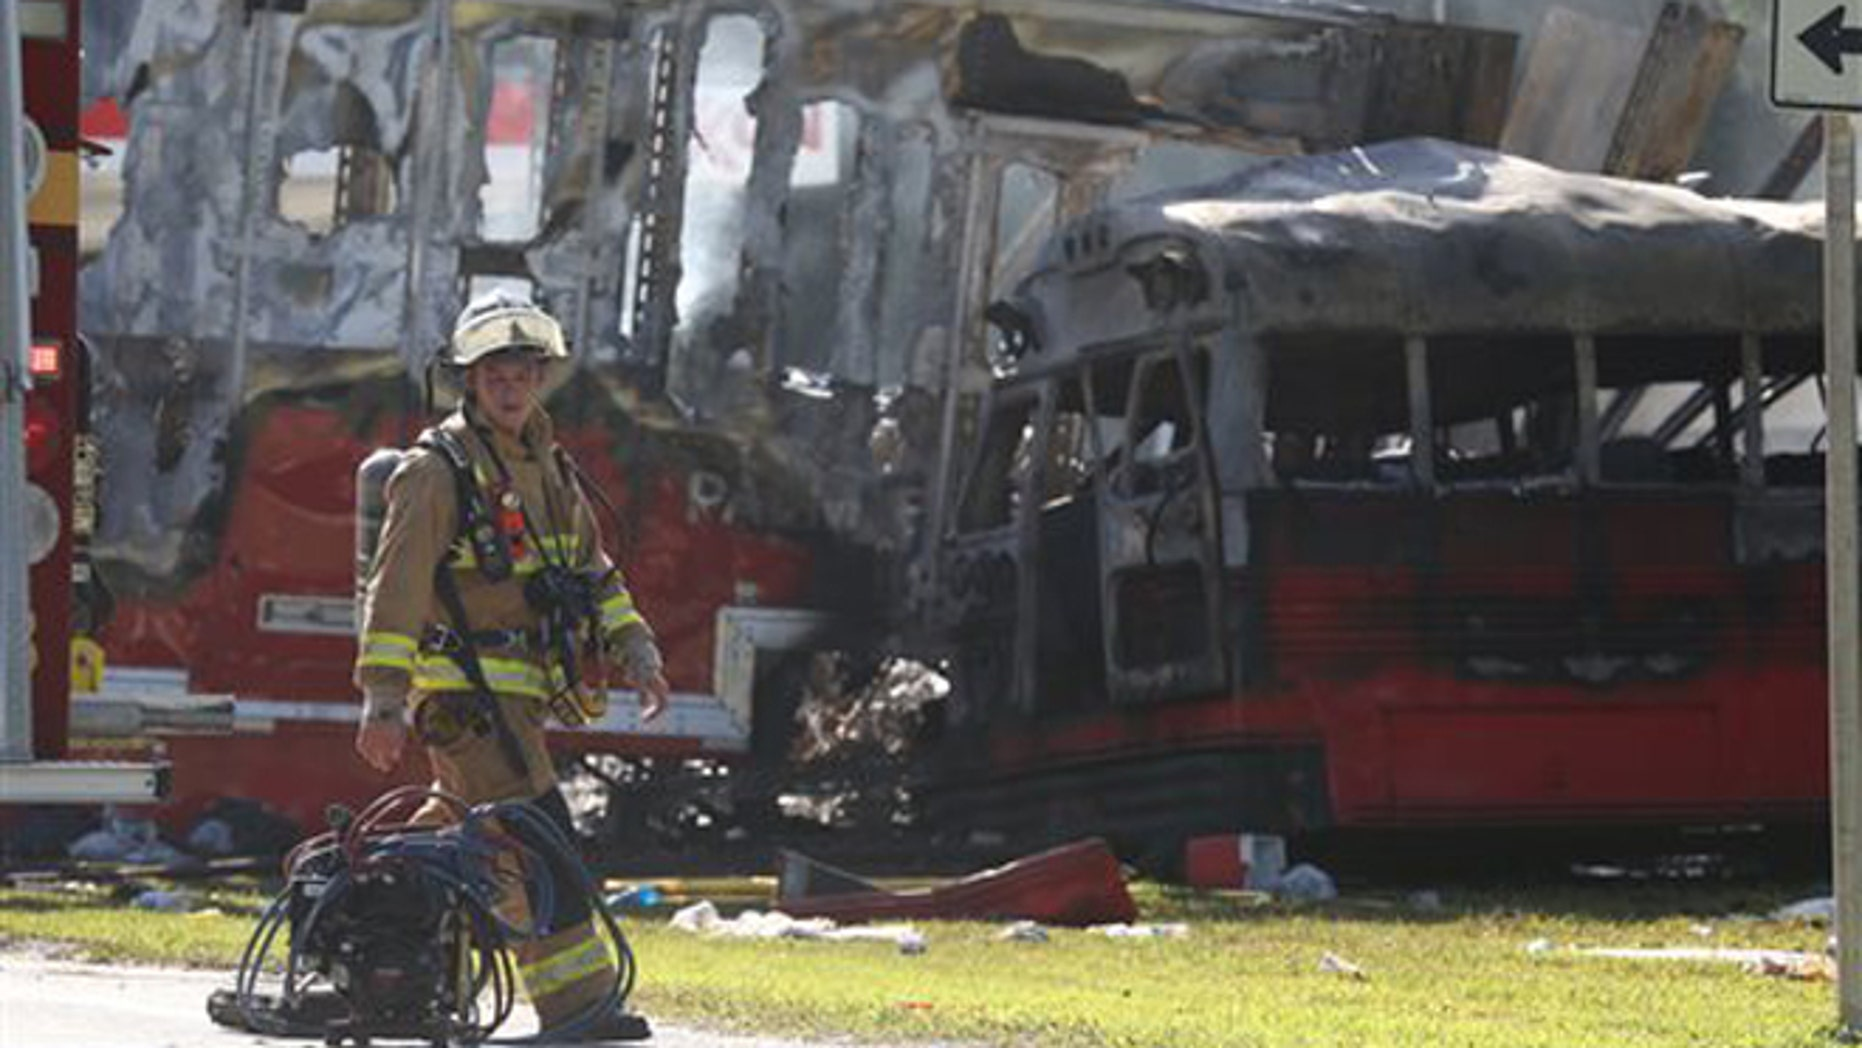 Wakulla County first responders work on the scene of an accident on Saturday, July 2, 2016 in Wakulla, Fla.